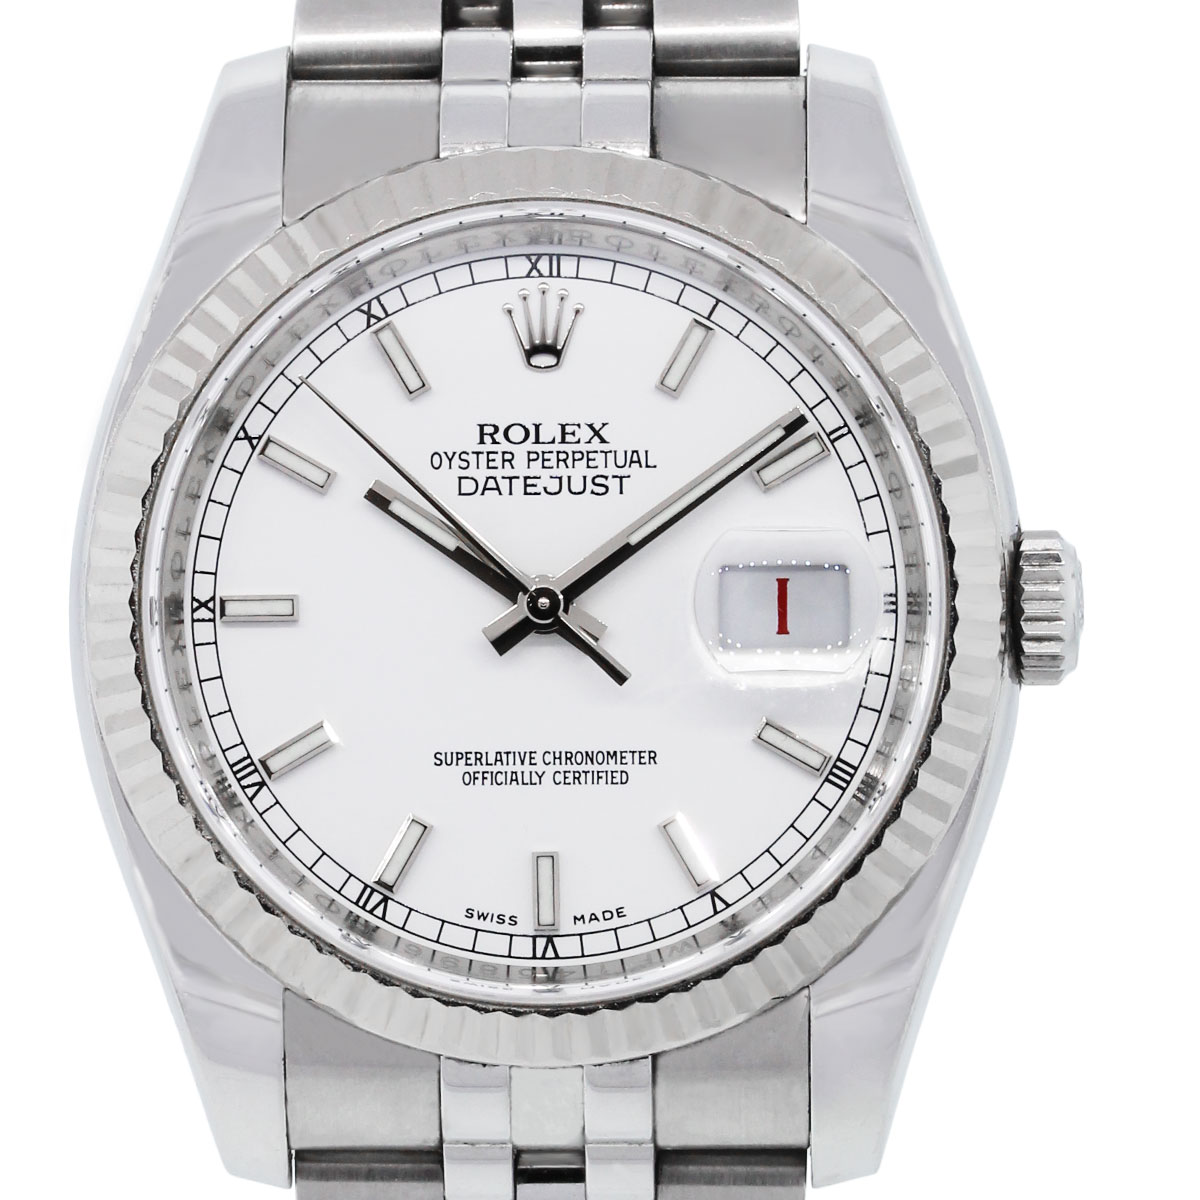 Rolex 16234 datejust white dial stainless steel watch for Stainless steel watch